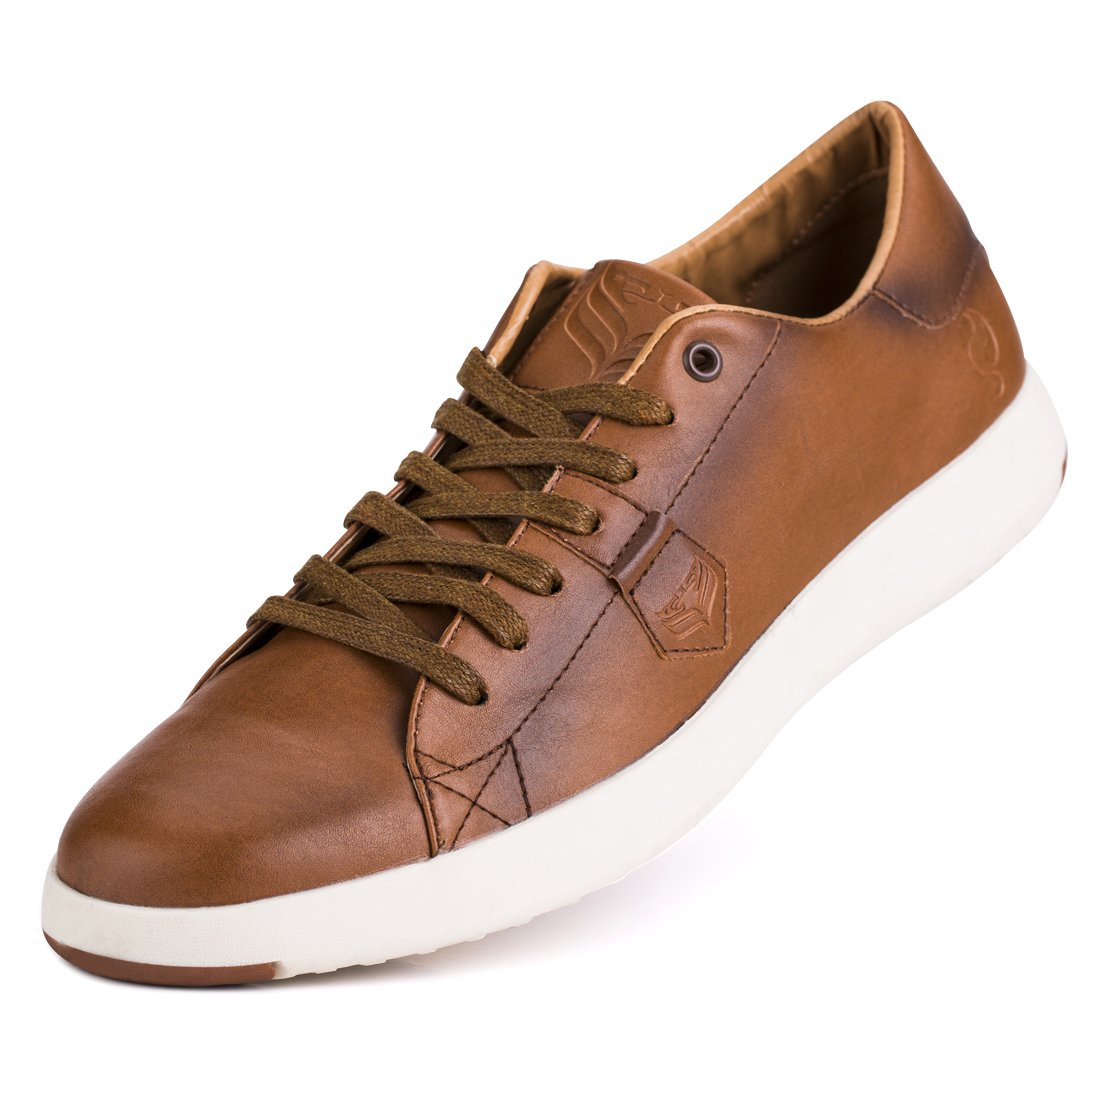 Jivana Men's Sneaker Casual Classic Shoes Lace-up Blue/Brown/White